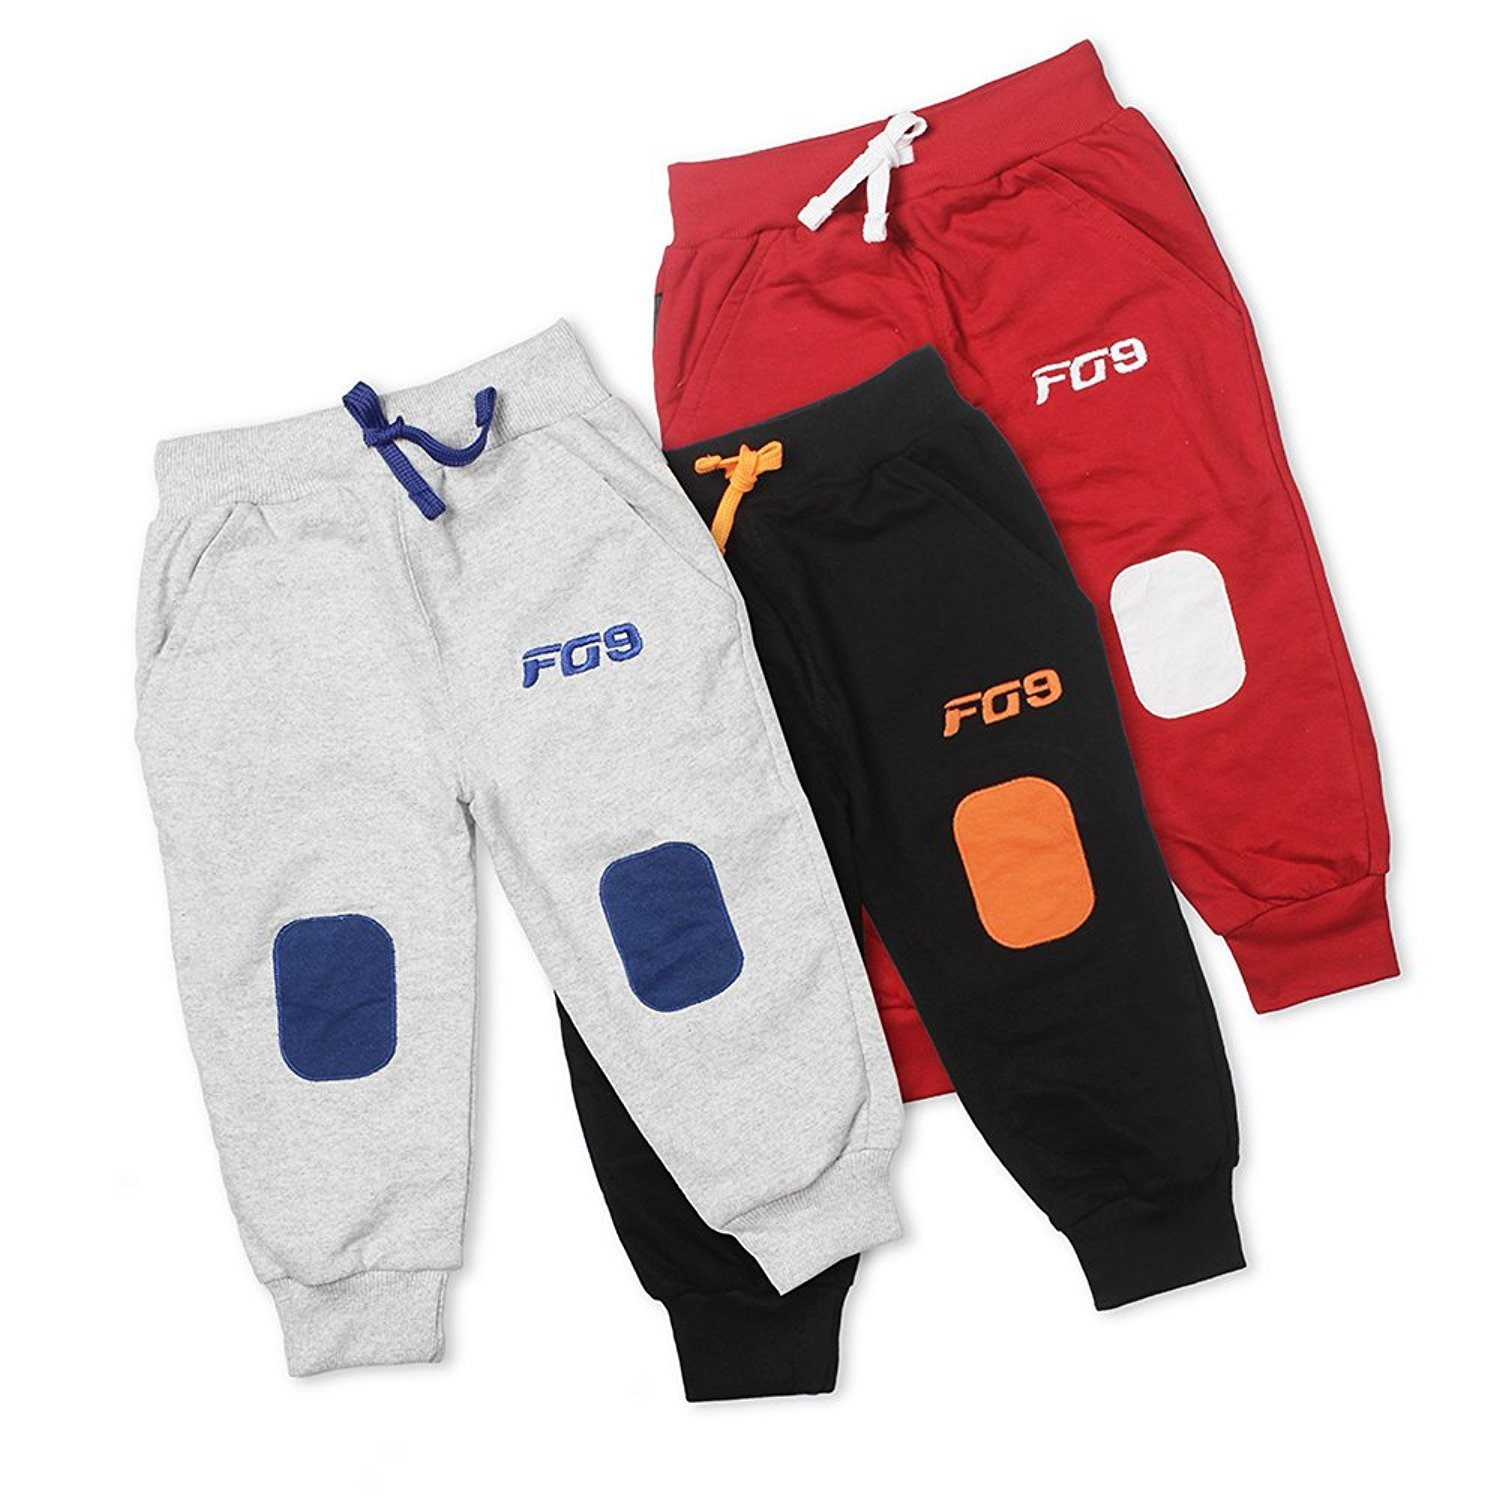 Fingers Pack of 3 Knitted Boys Girls Kids Joggers Sweatpants Cotton Track Pants Pajamas with Knee Patch Detailing